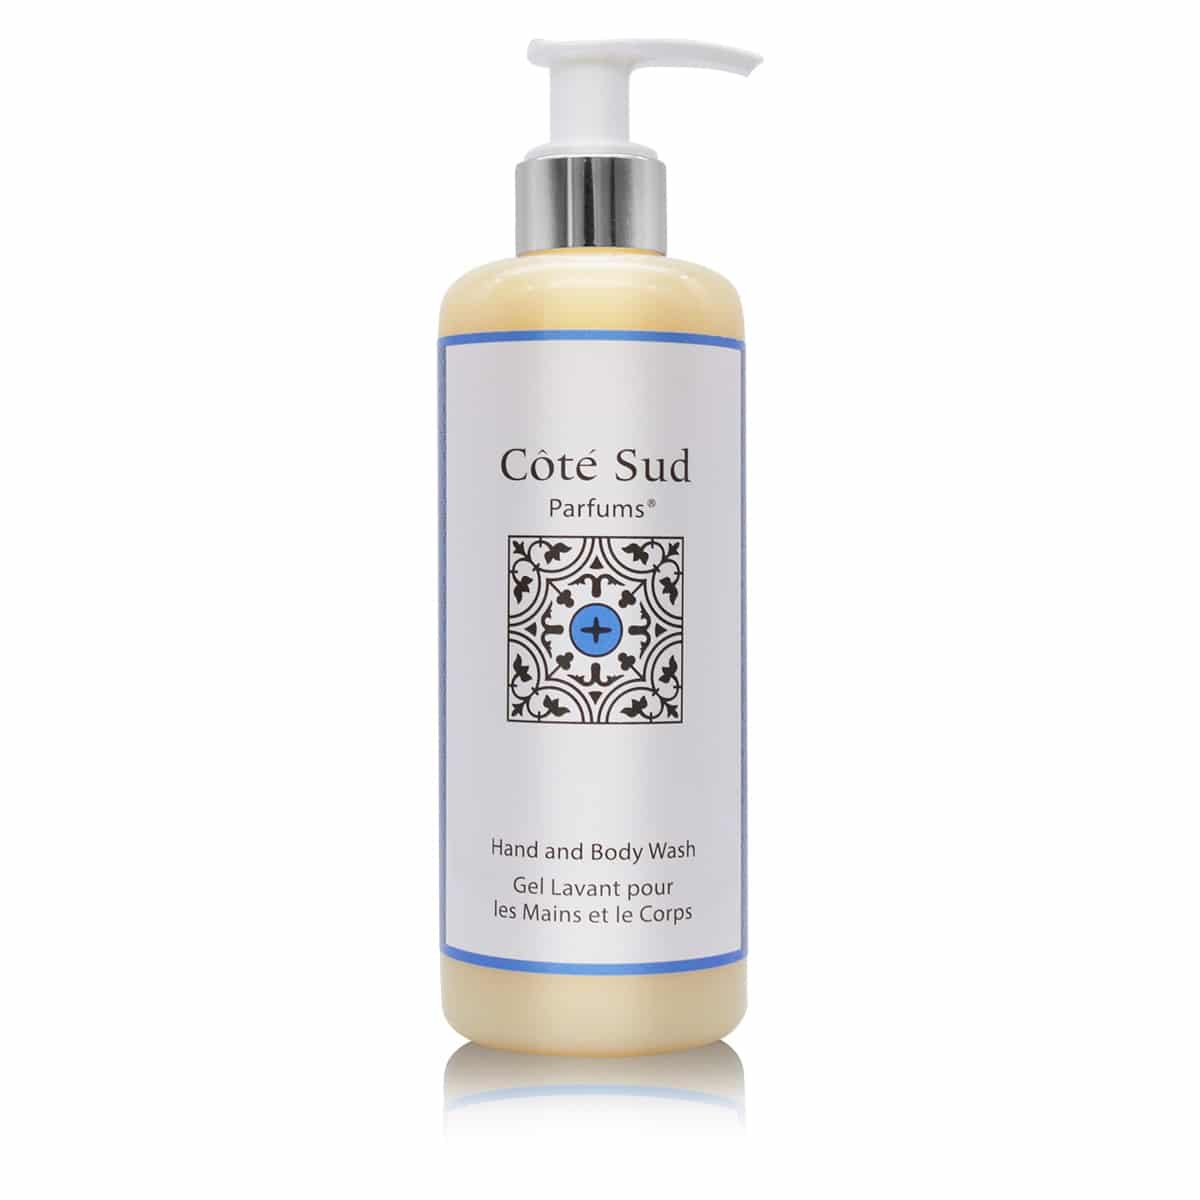 Hand & Body Wash | Côté Sud Parfums